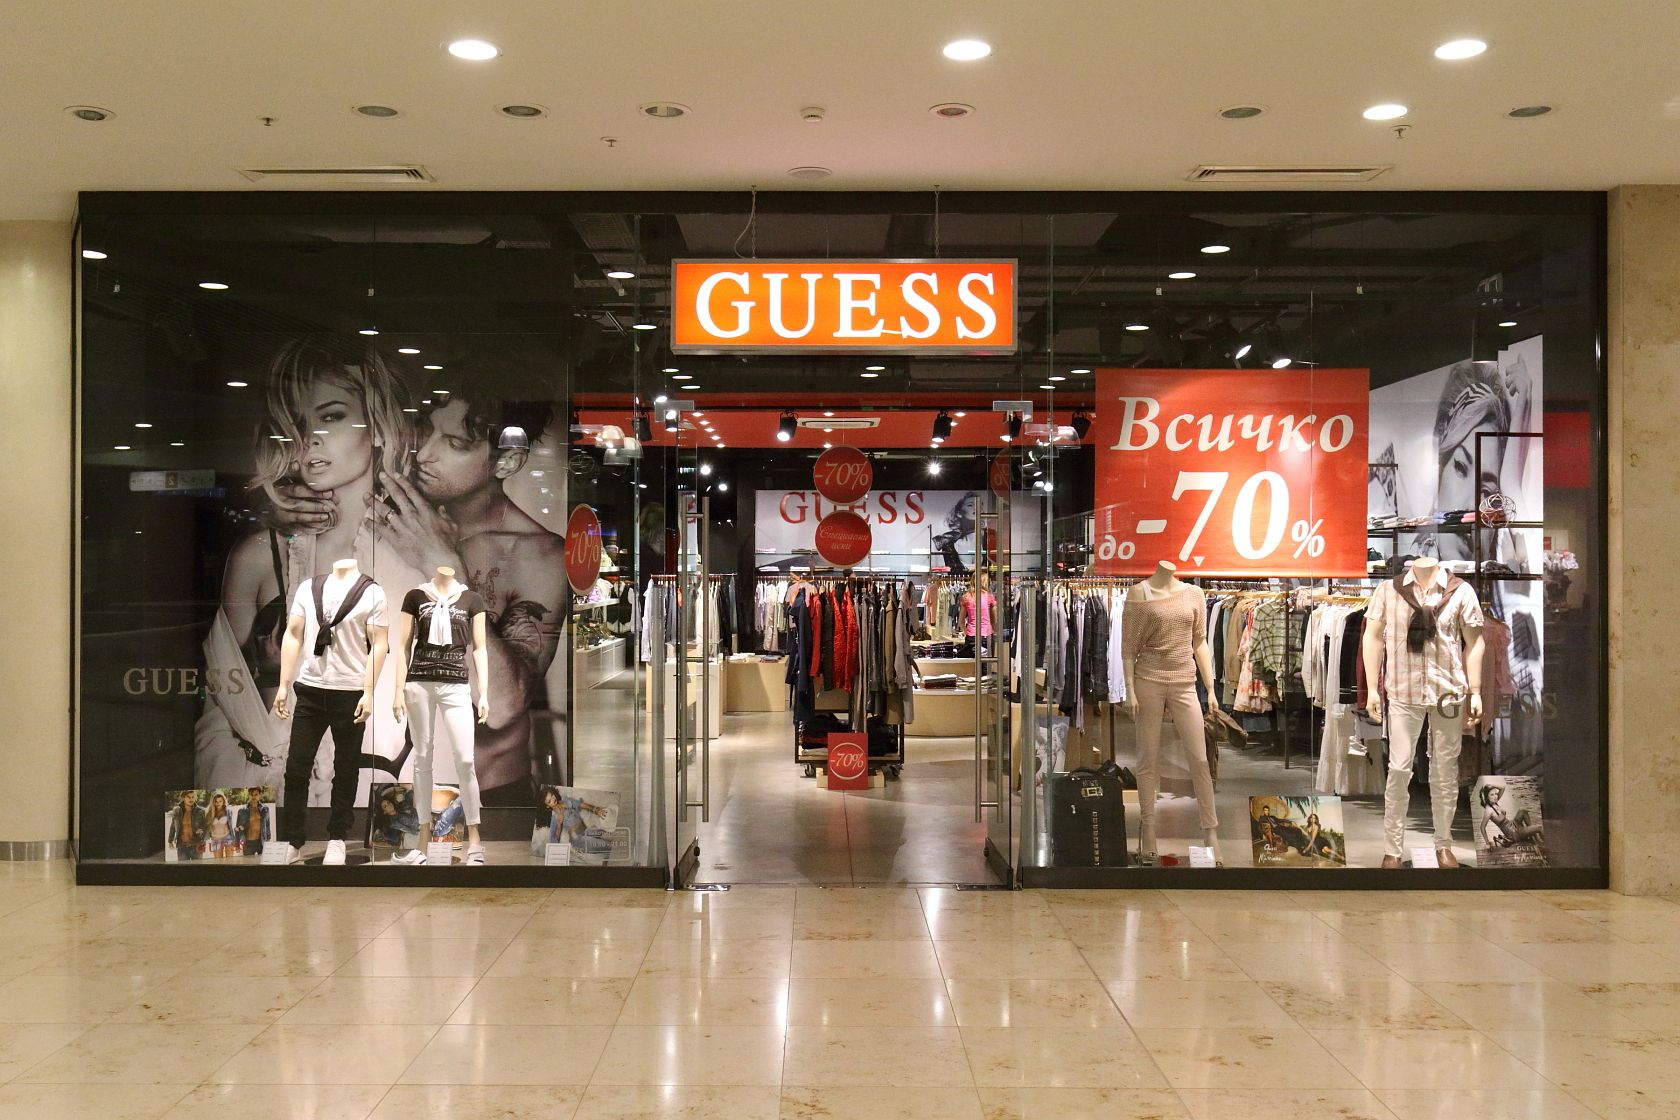 Find Guess Outlet in USA, Save money on Guess Handbags, Purses, Watches, Shoes, Clothing and So On. FREE SHIPPING on All Orders $99+. Women & Men and Kids!